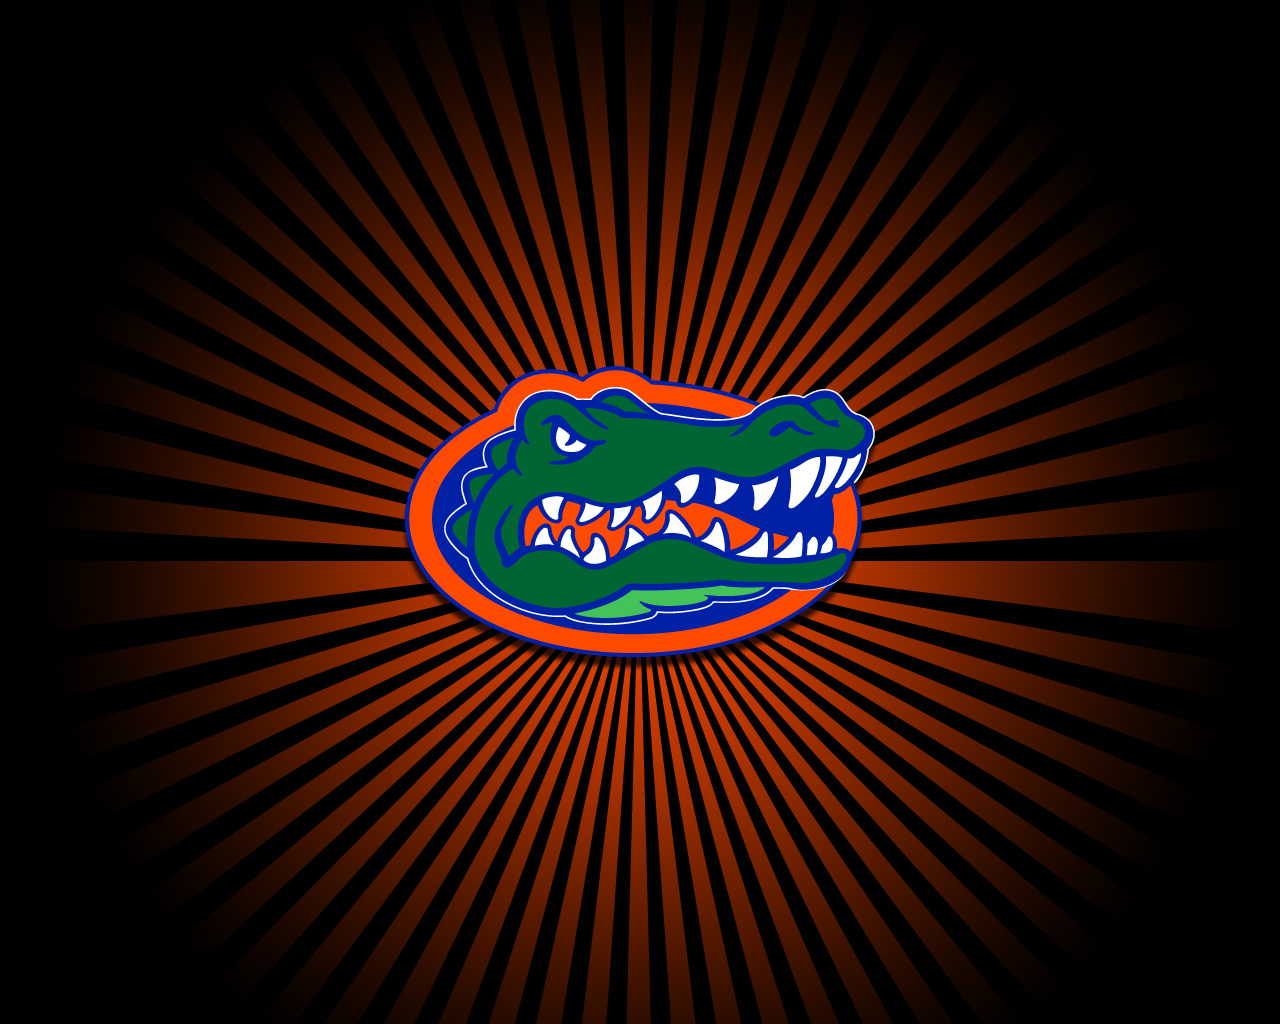 Florida Gators Wallpaper 1280x1024